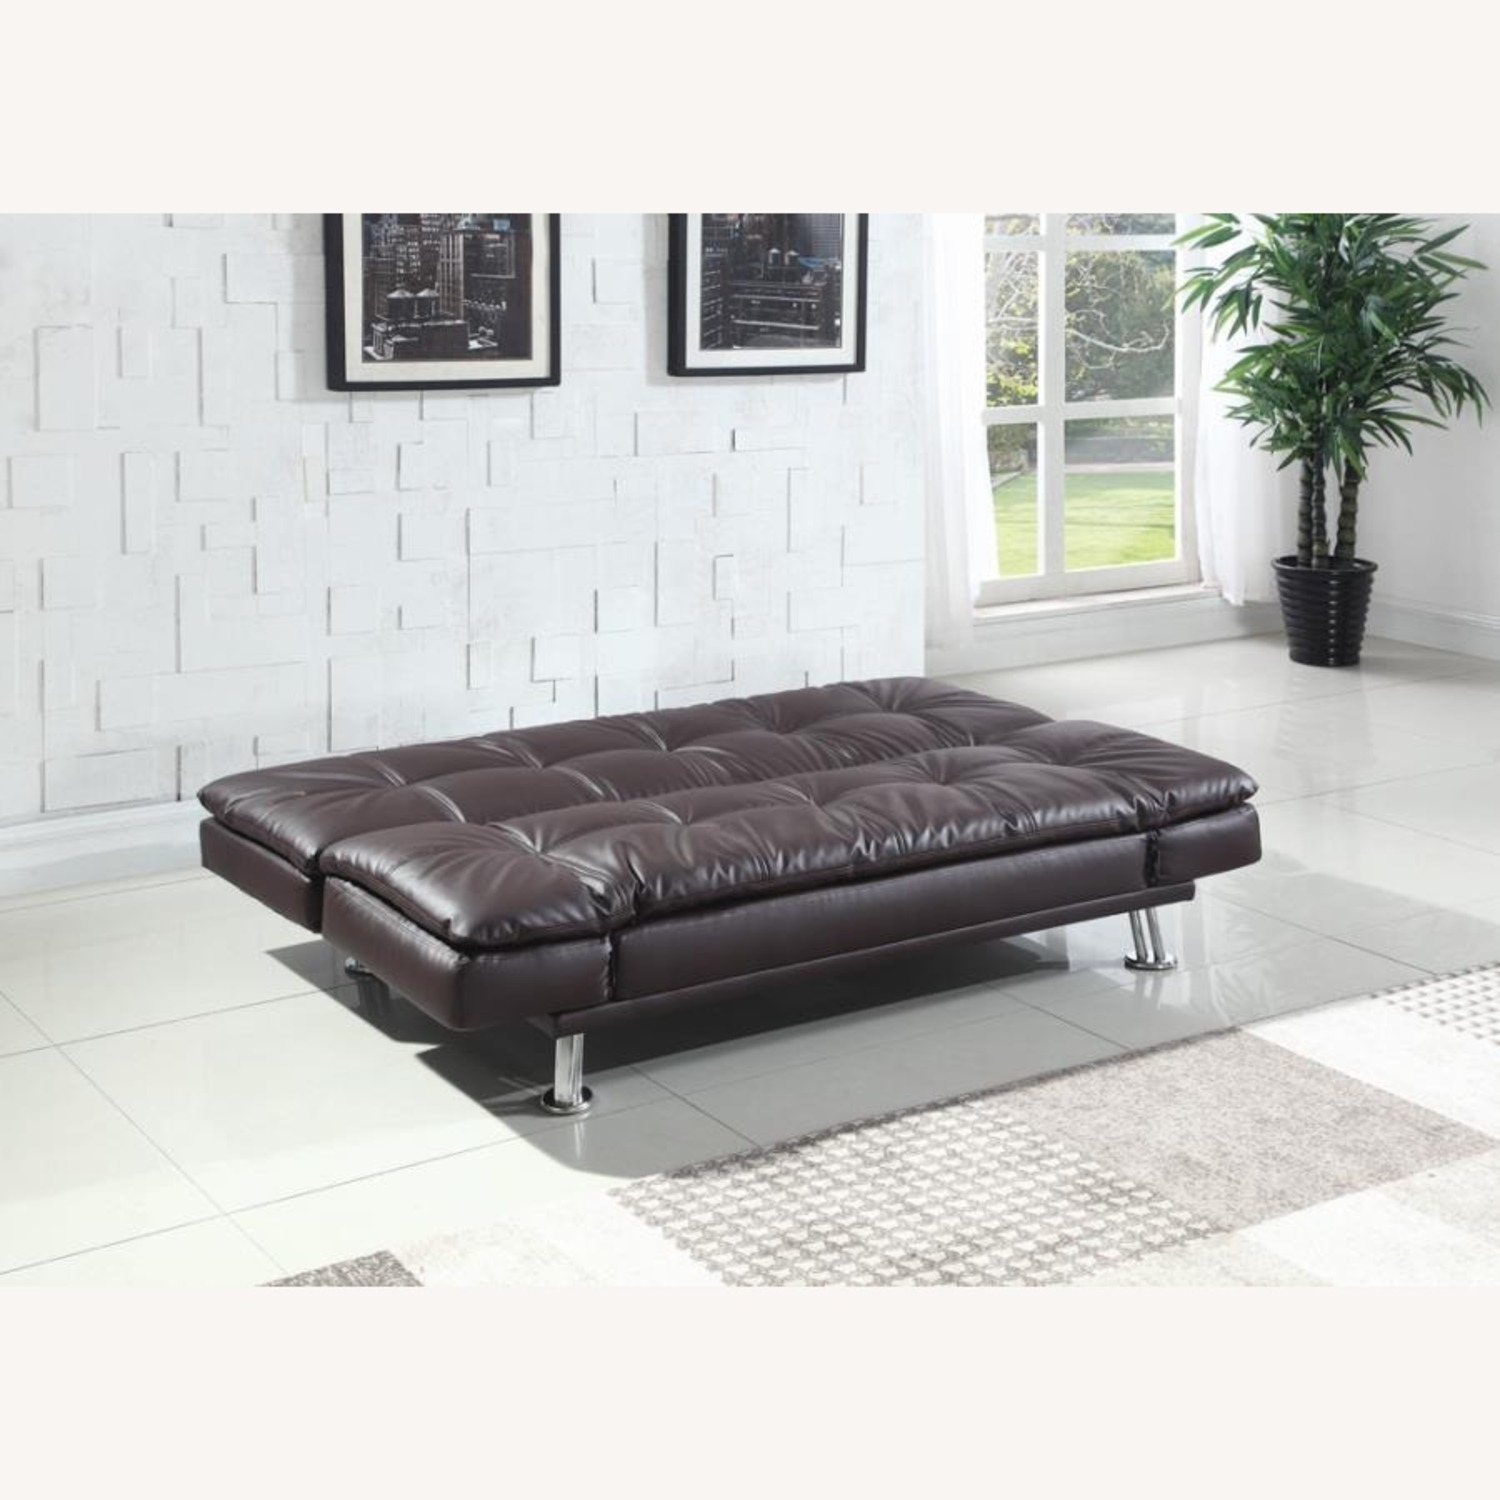 Sofa Bed In Brown Leatherette W/ Chrome Legs - image-2